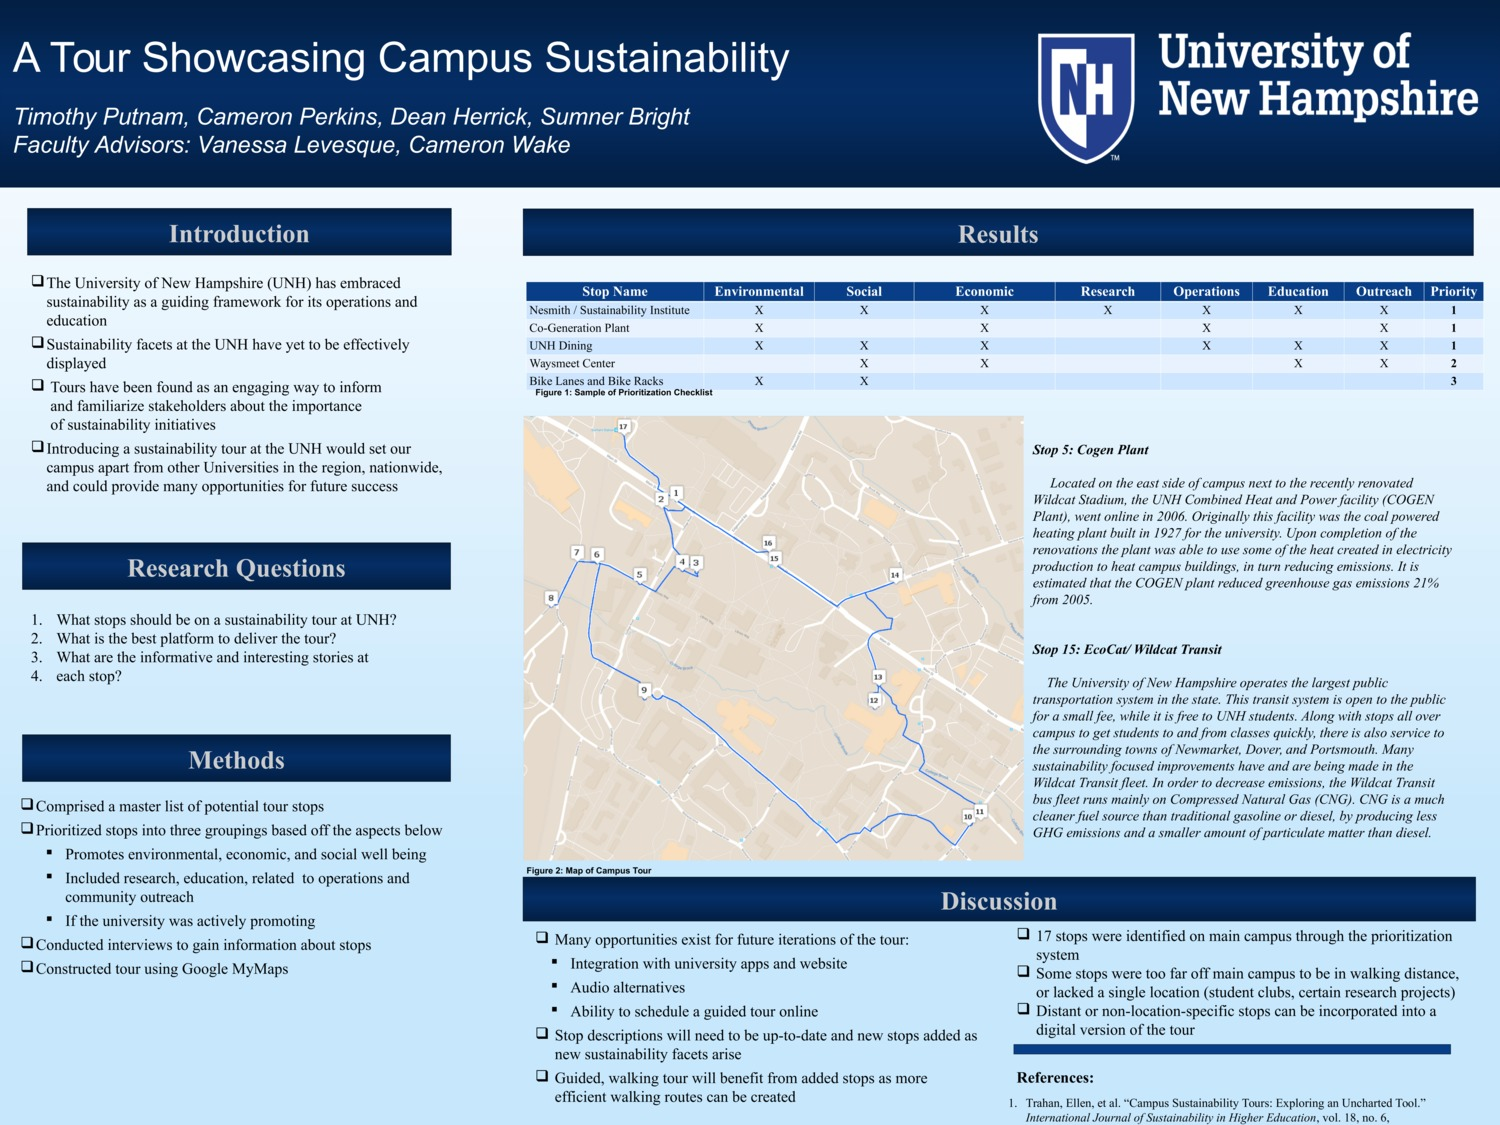 A Tour Showcasing Campus Sustainability by sbb1001